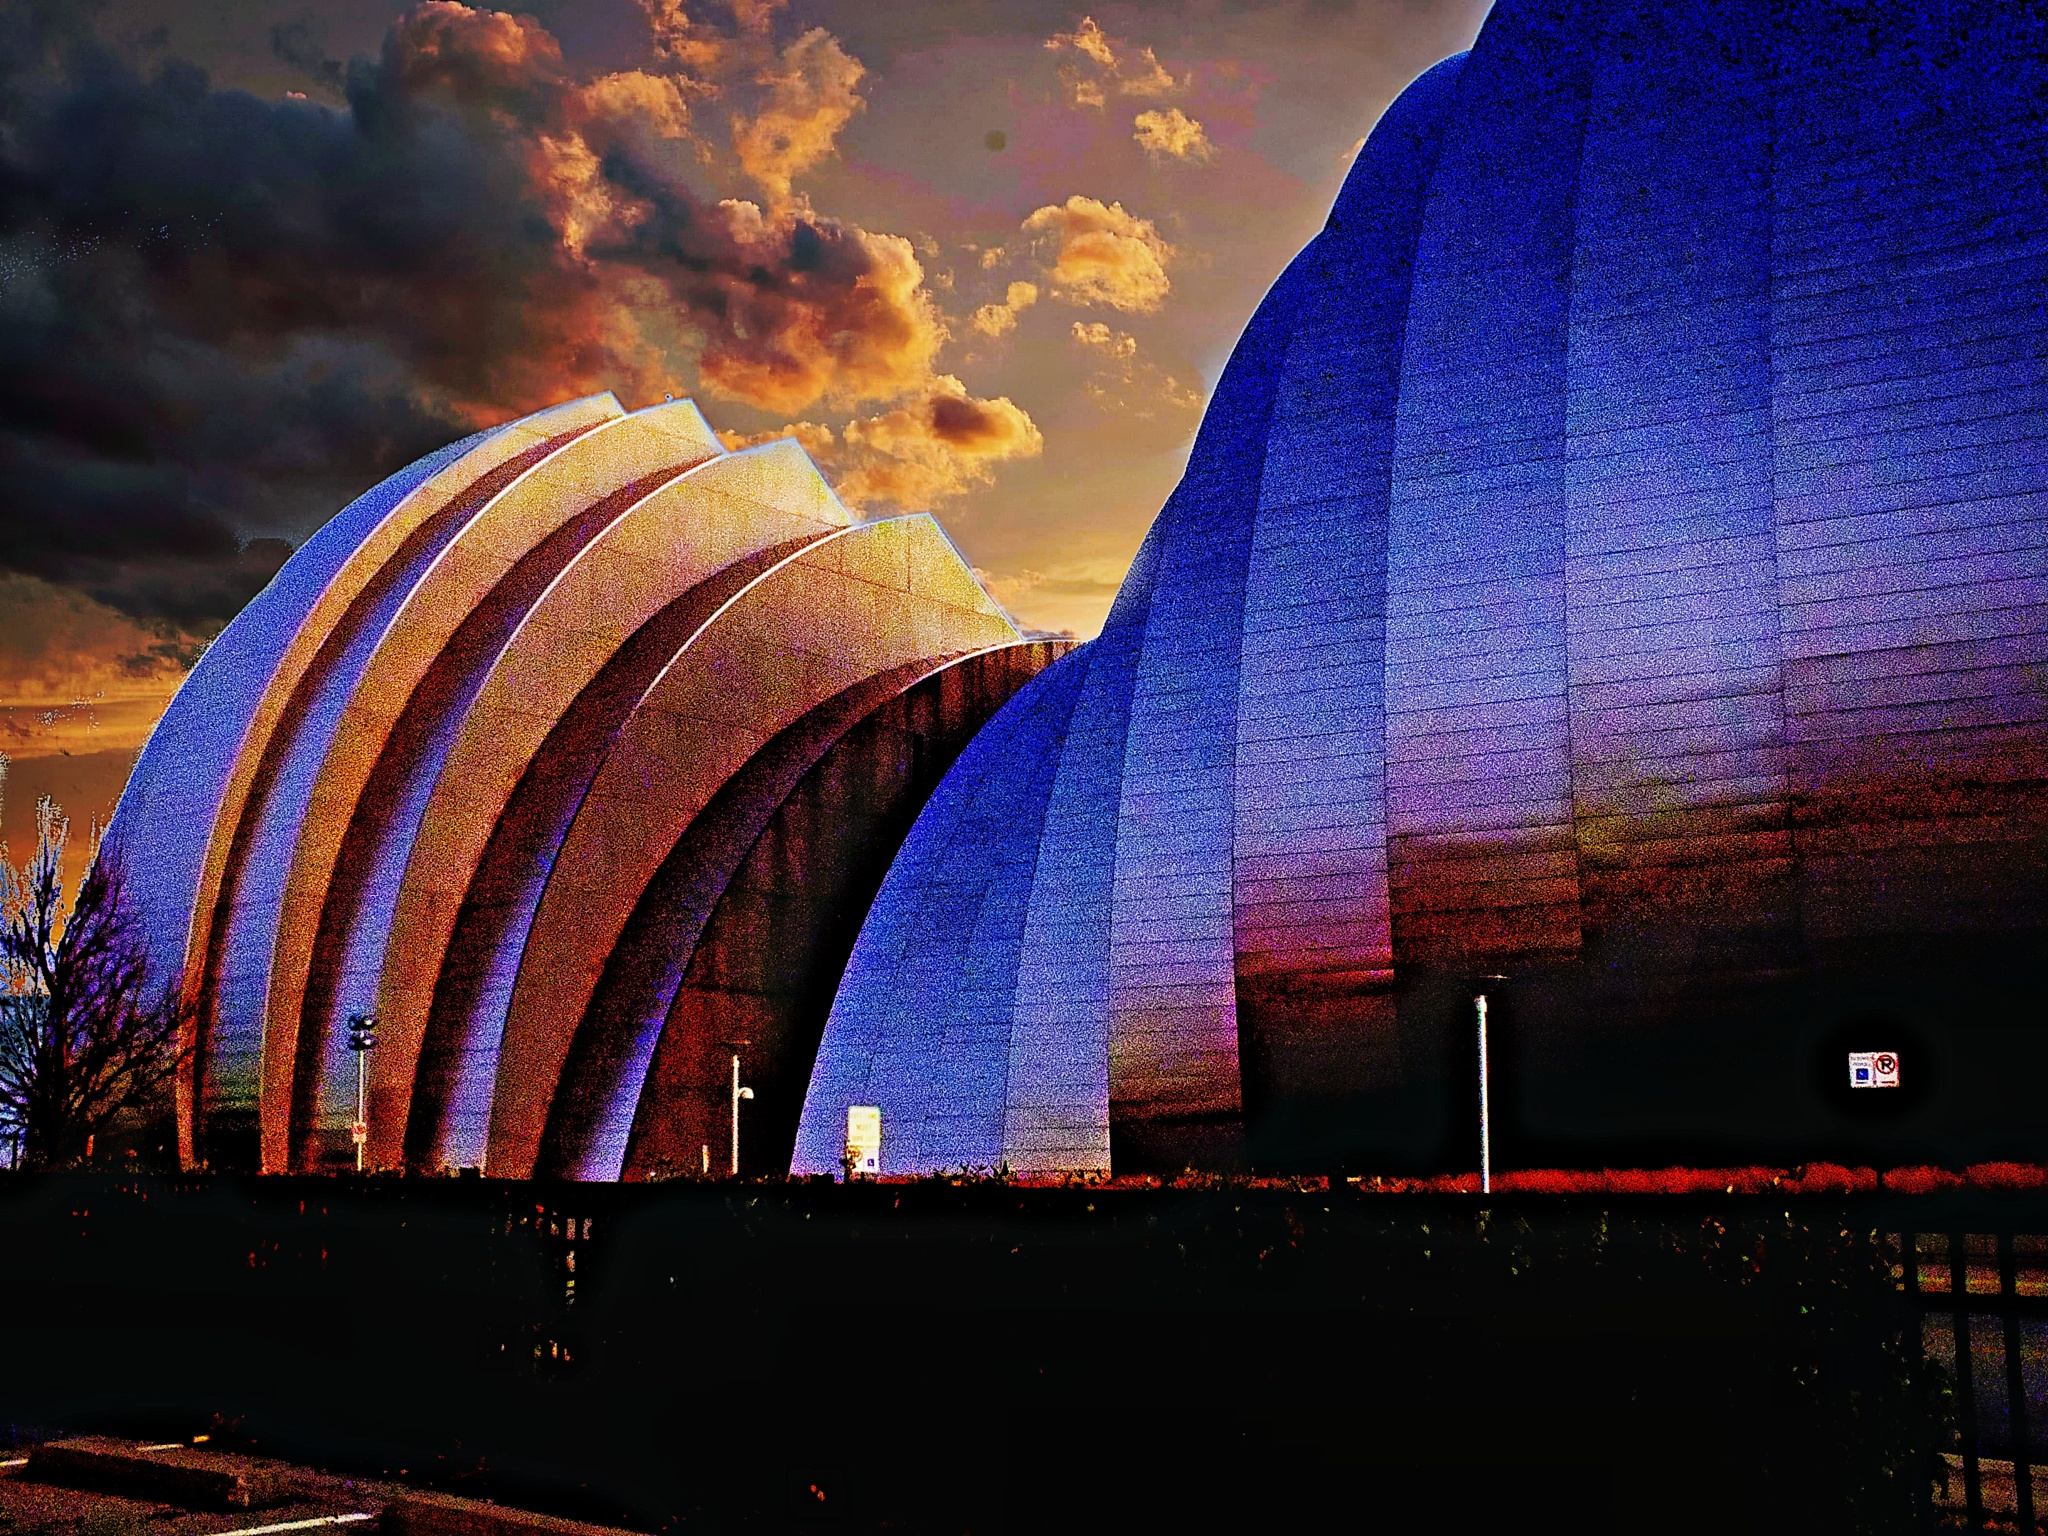 Approaching Storm Over Kauffman Center For The Performing Arts by Lorenzo (Larry) Jonree